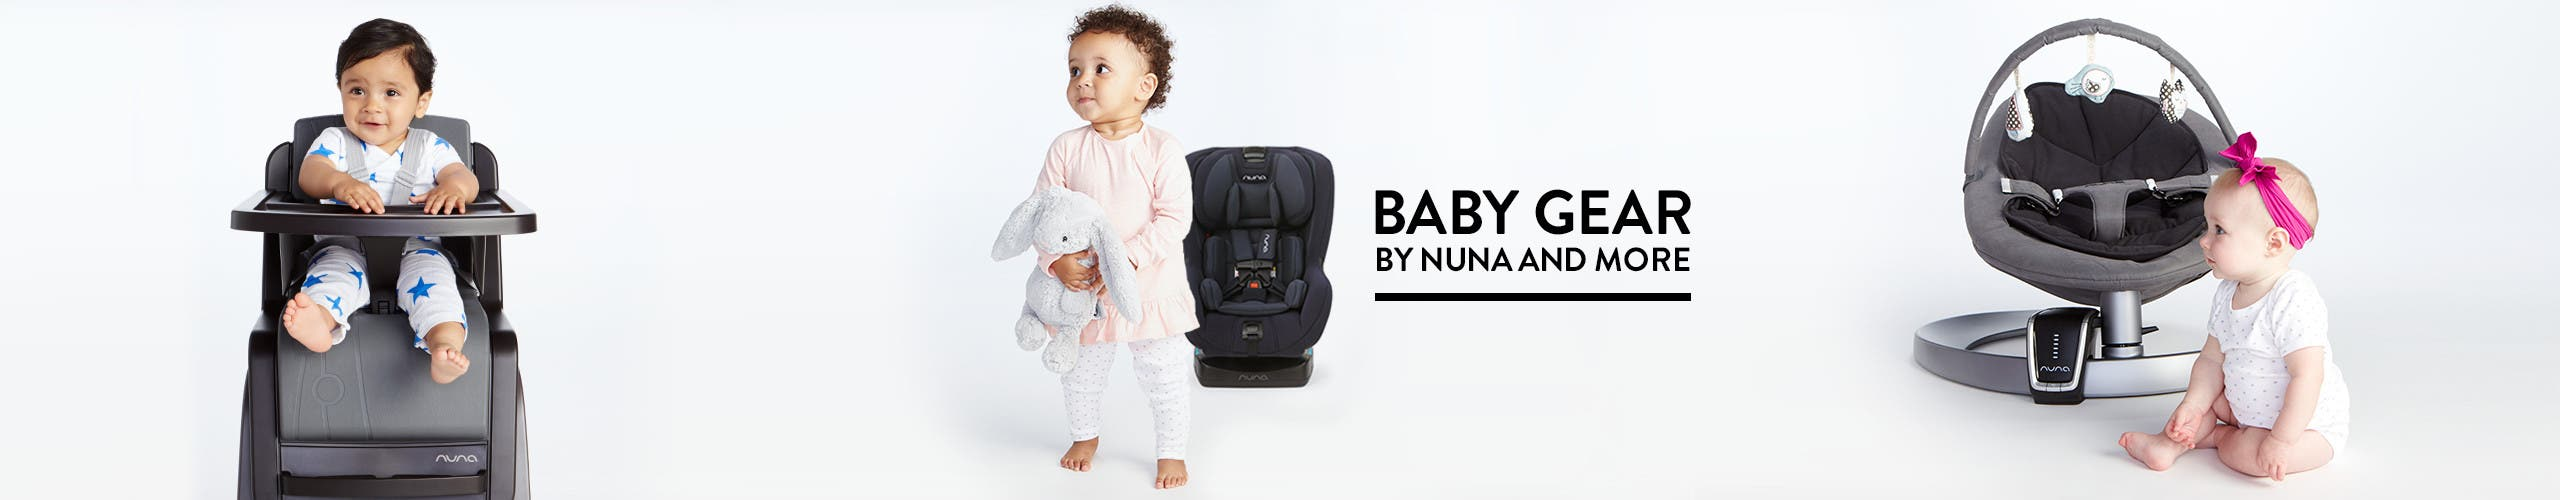 Baby gear by nuna and more.